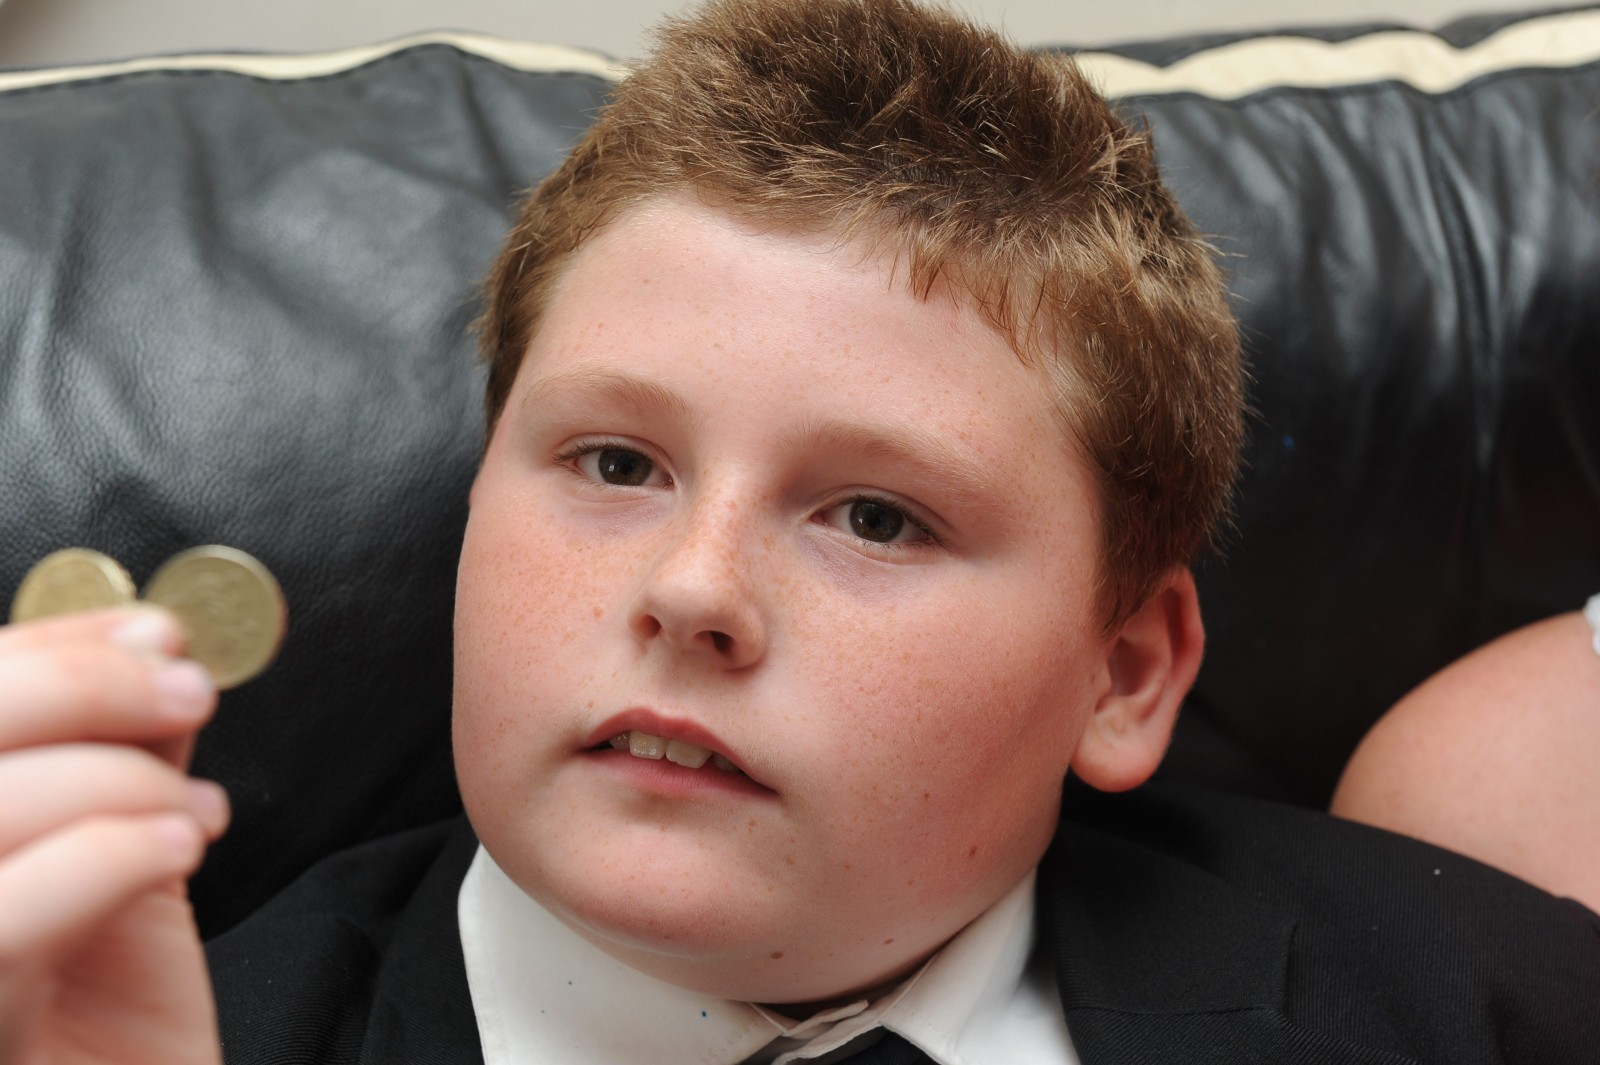 Thugs terrify 11-year-old schoolboy just so they could steal his £2 bus fare